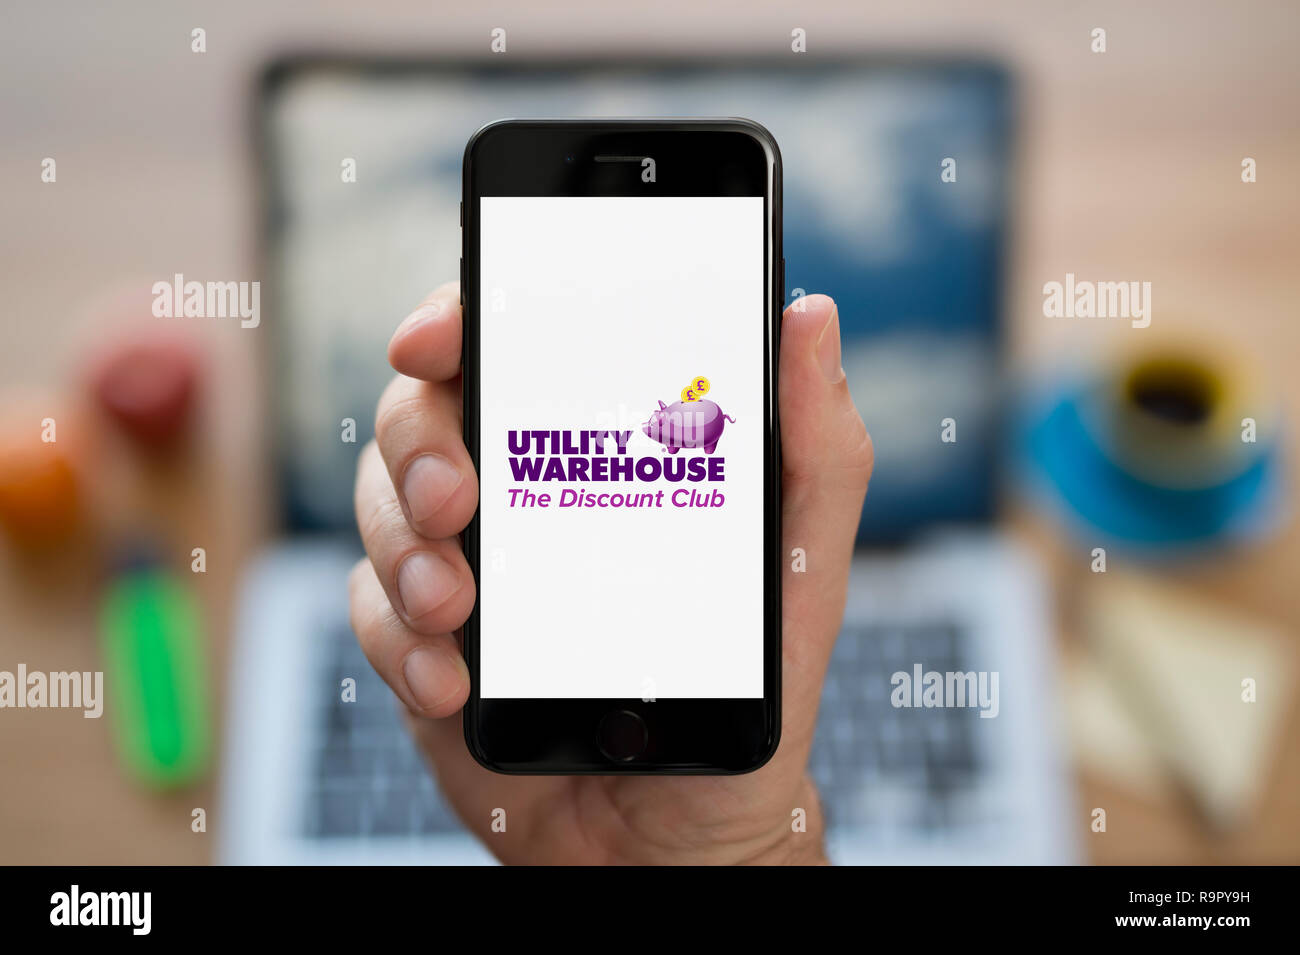 A man looks at his iPhone which displays the Utility Warehouse logo (Editorial use only). - Stock Image